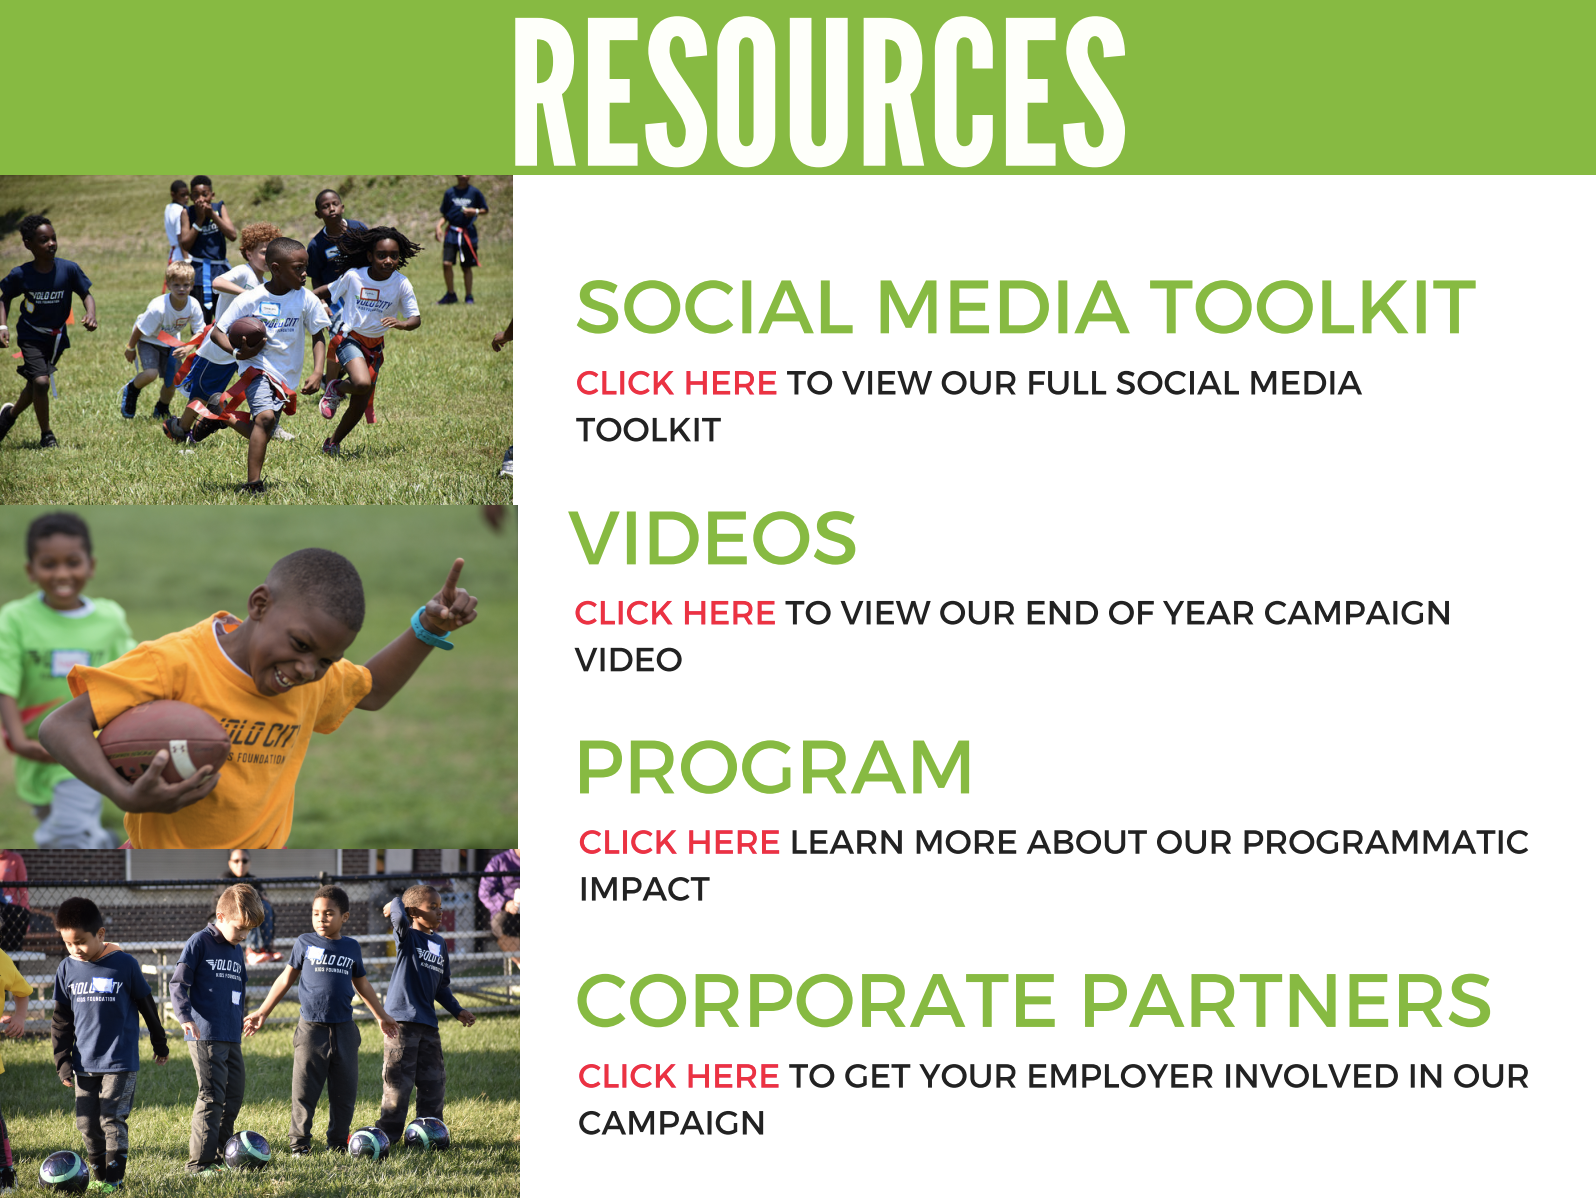 Resources for fundraisers